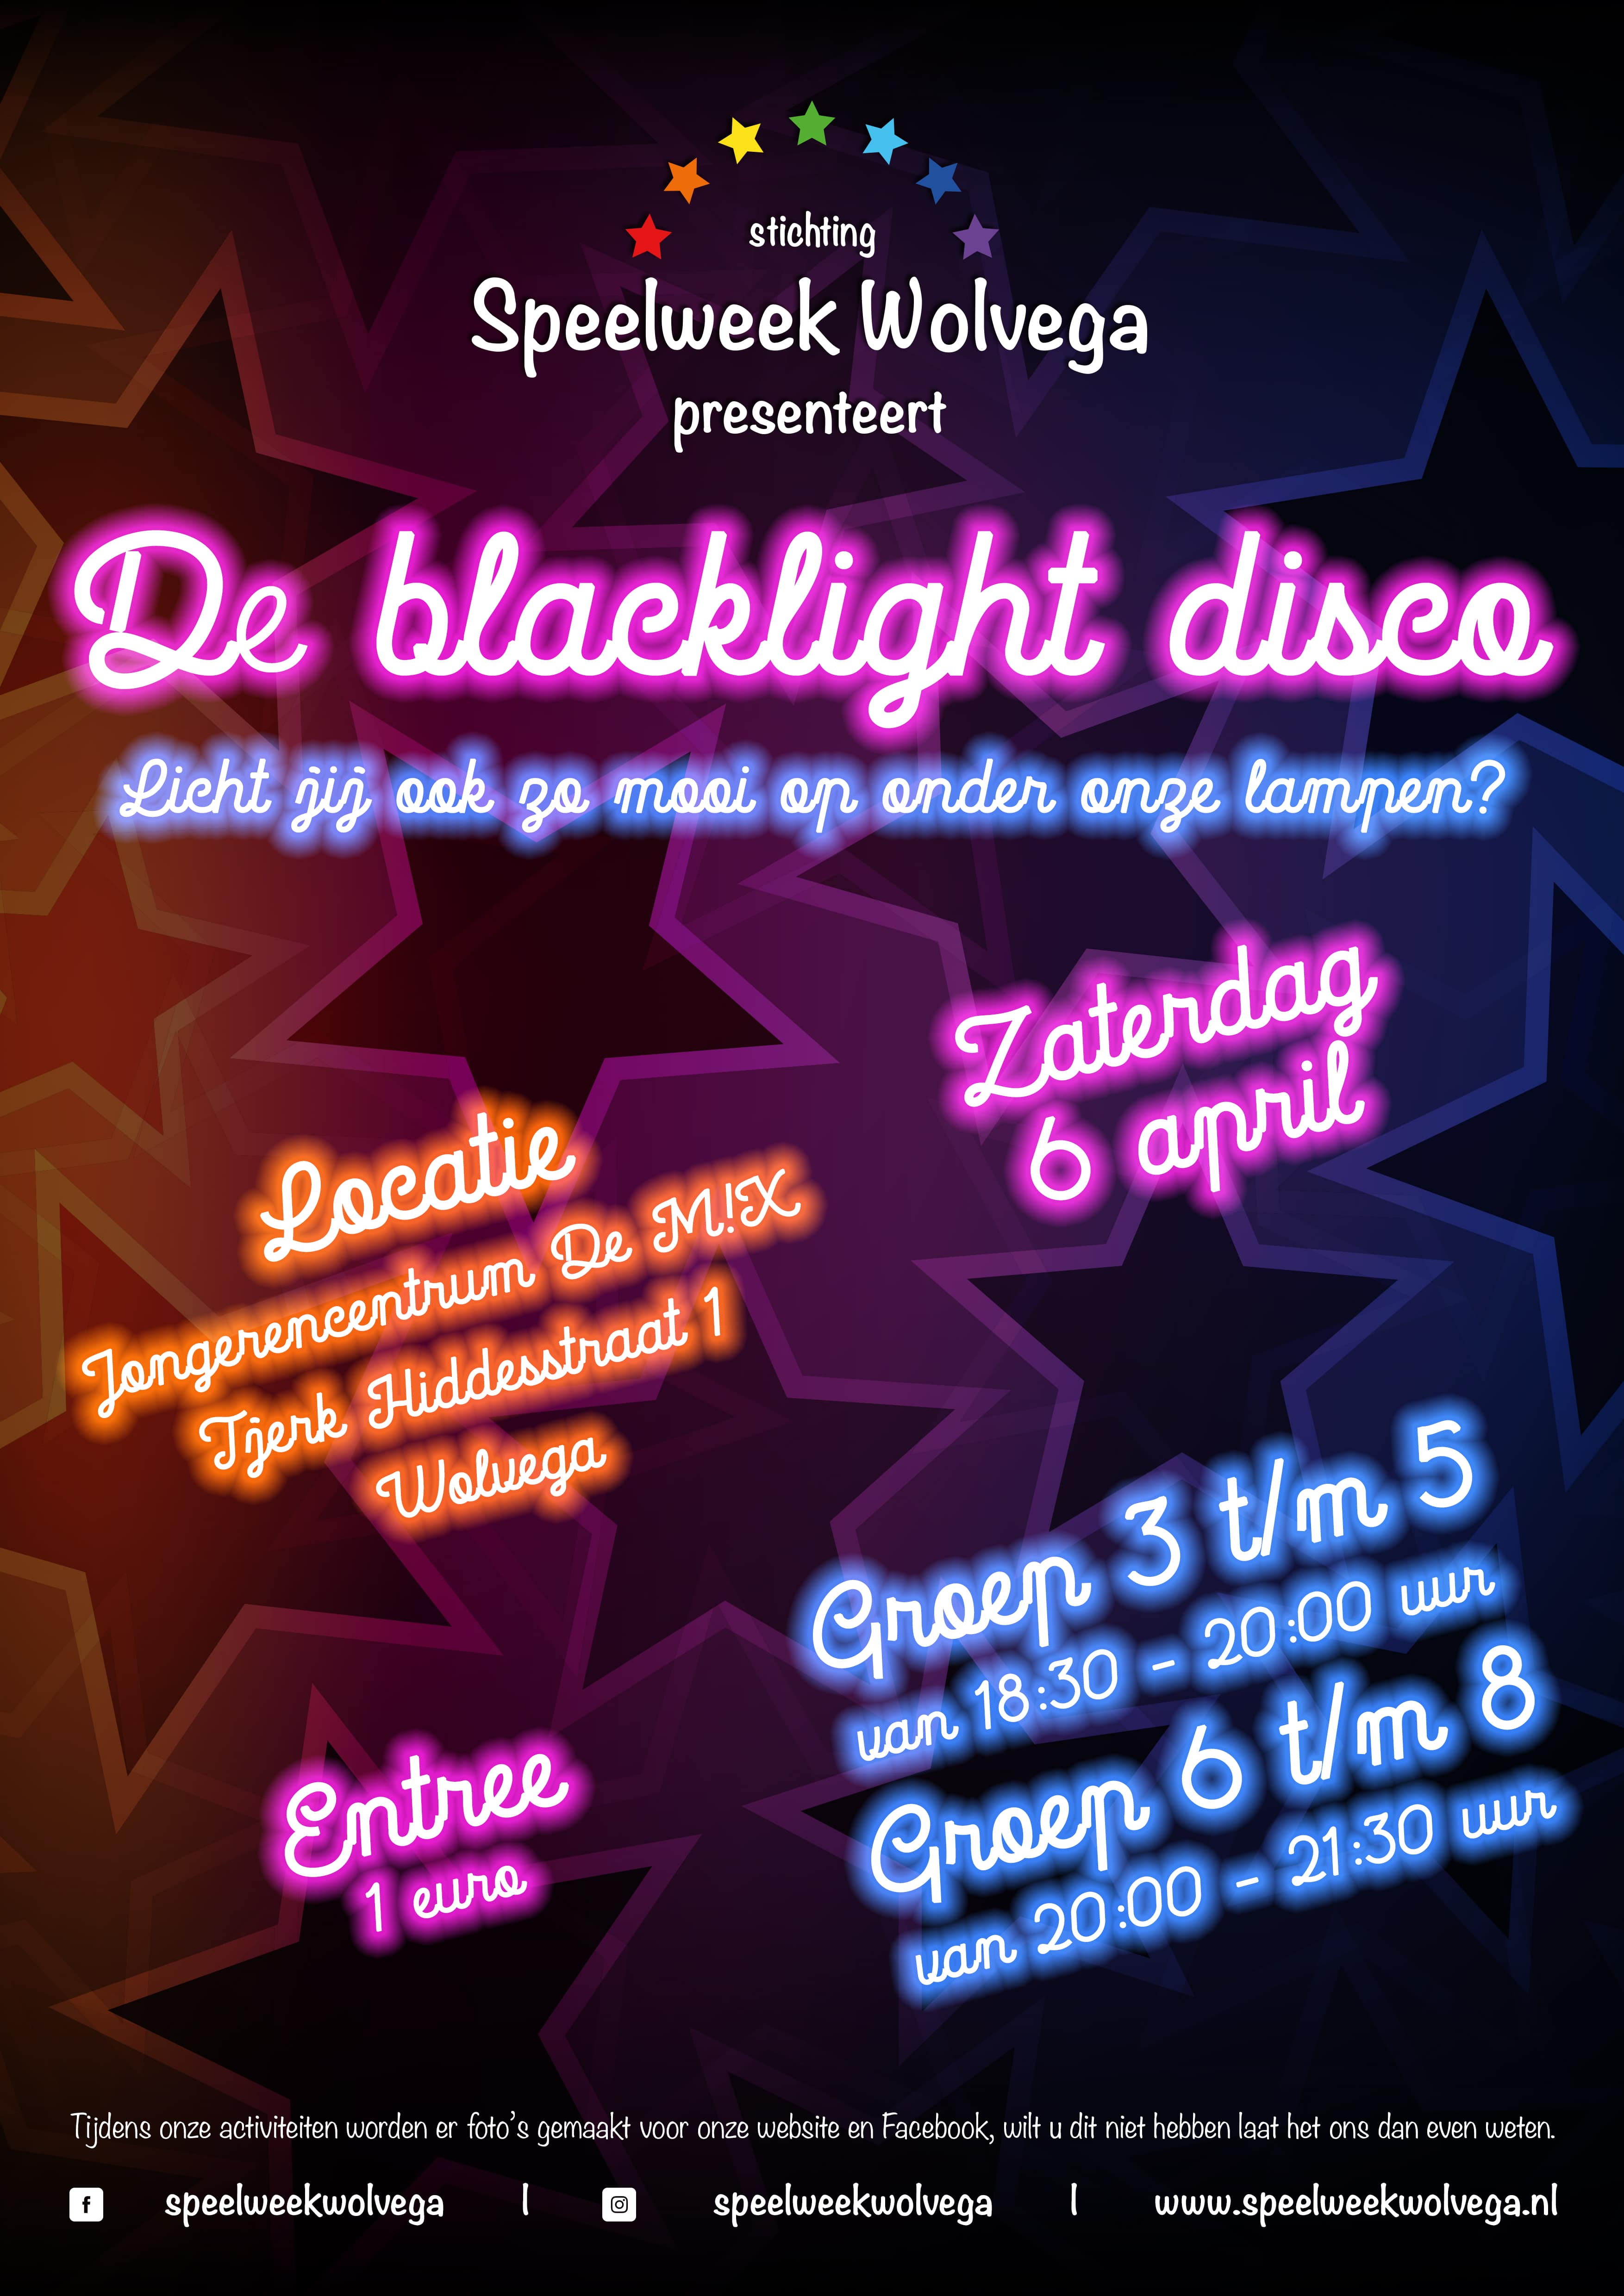 De Blacklight Disco | Speelweek Wolvega